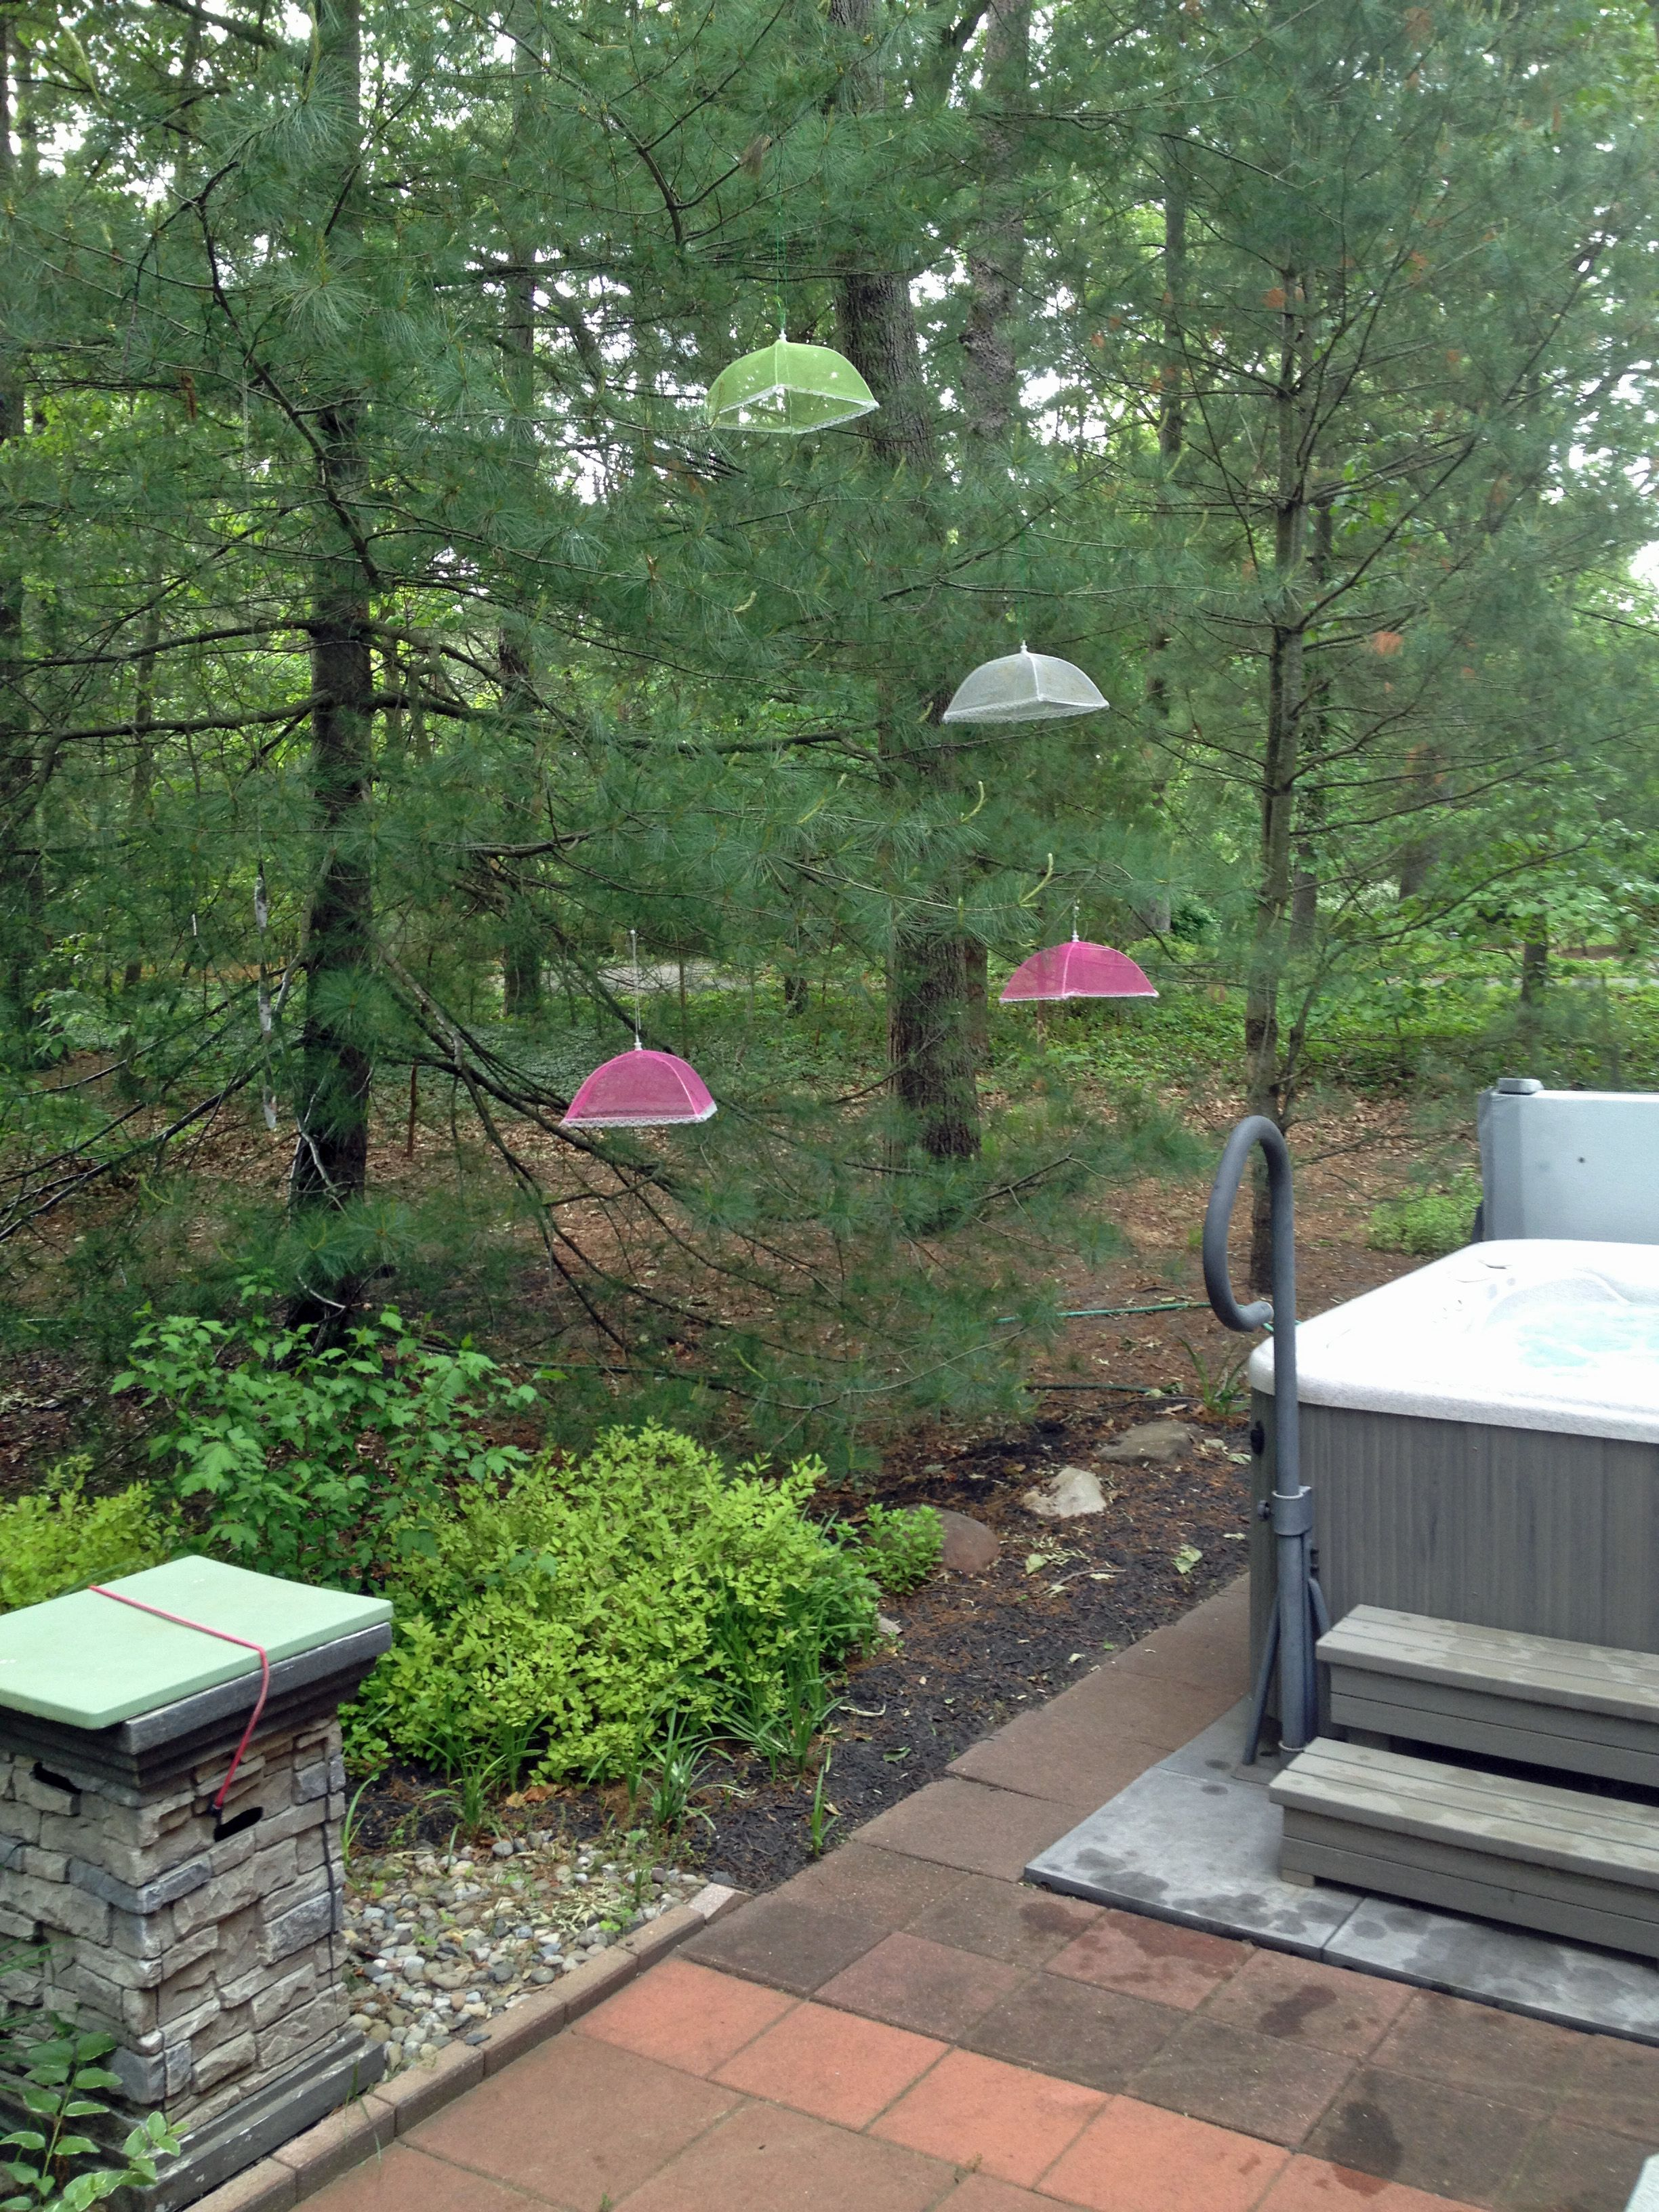 Garden decorations - Add some inexpensive, colorful mesh food covers ...